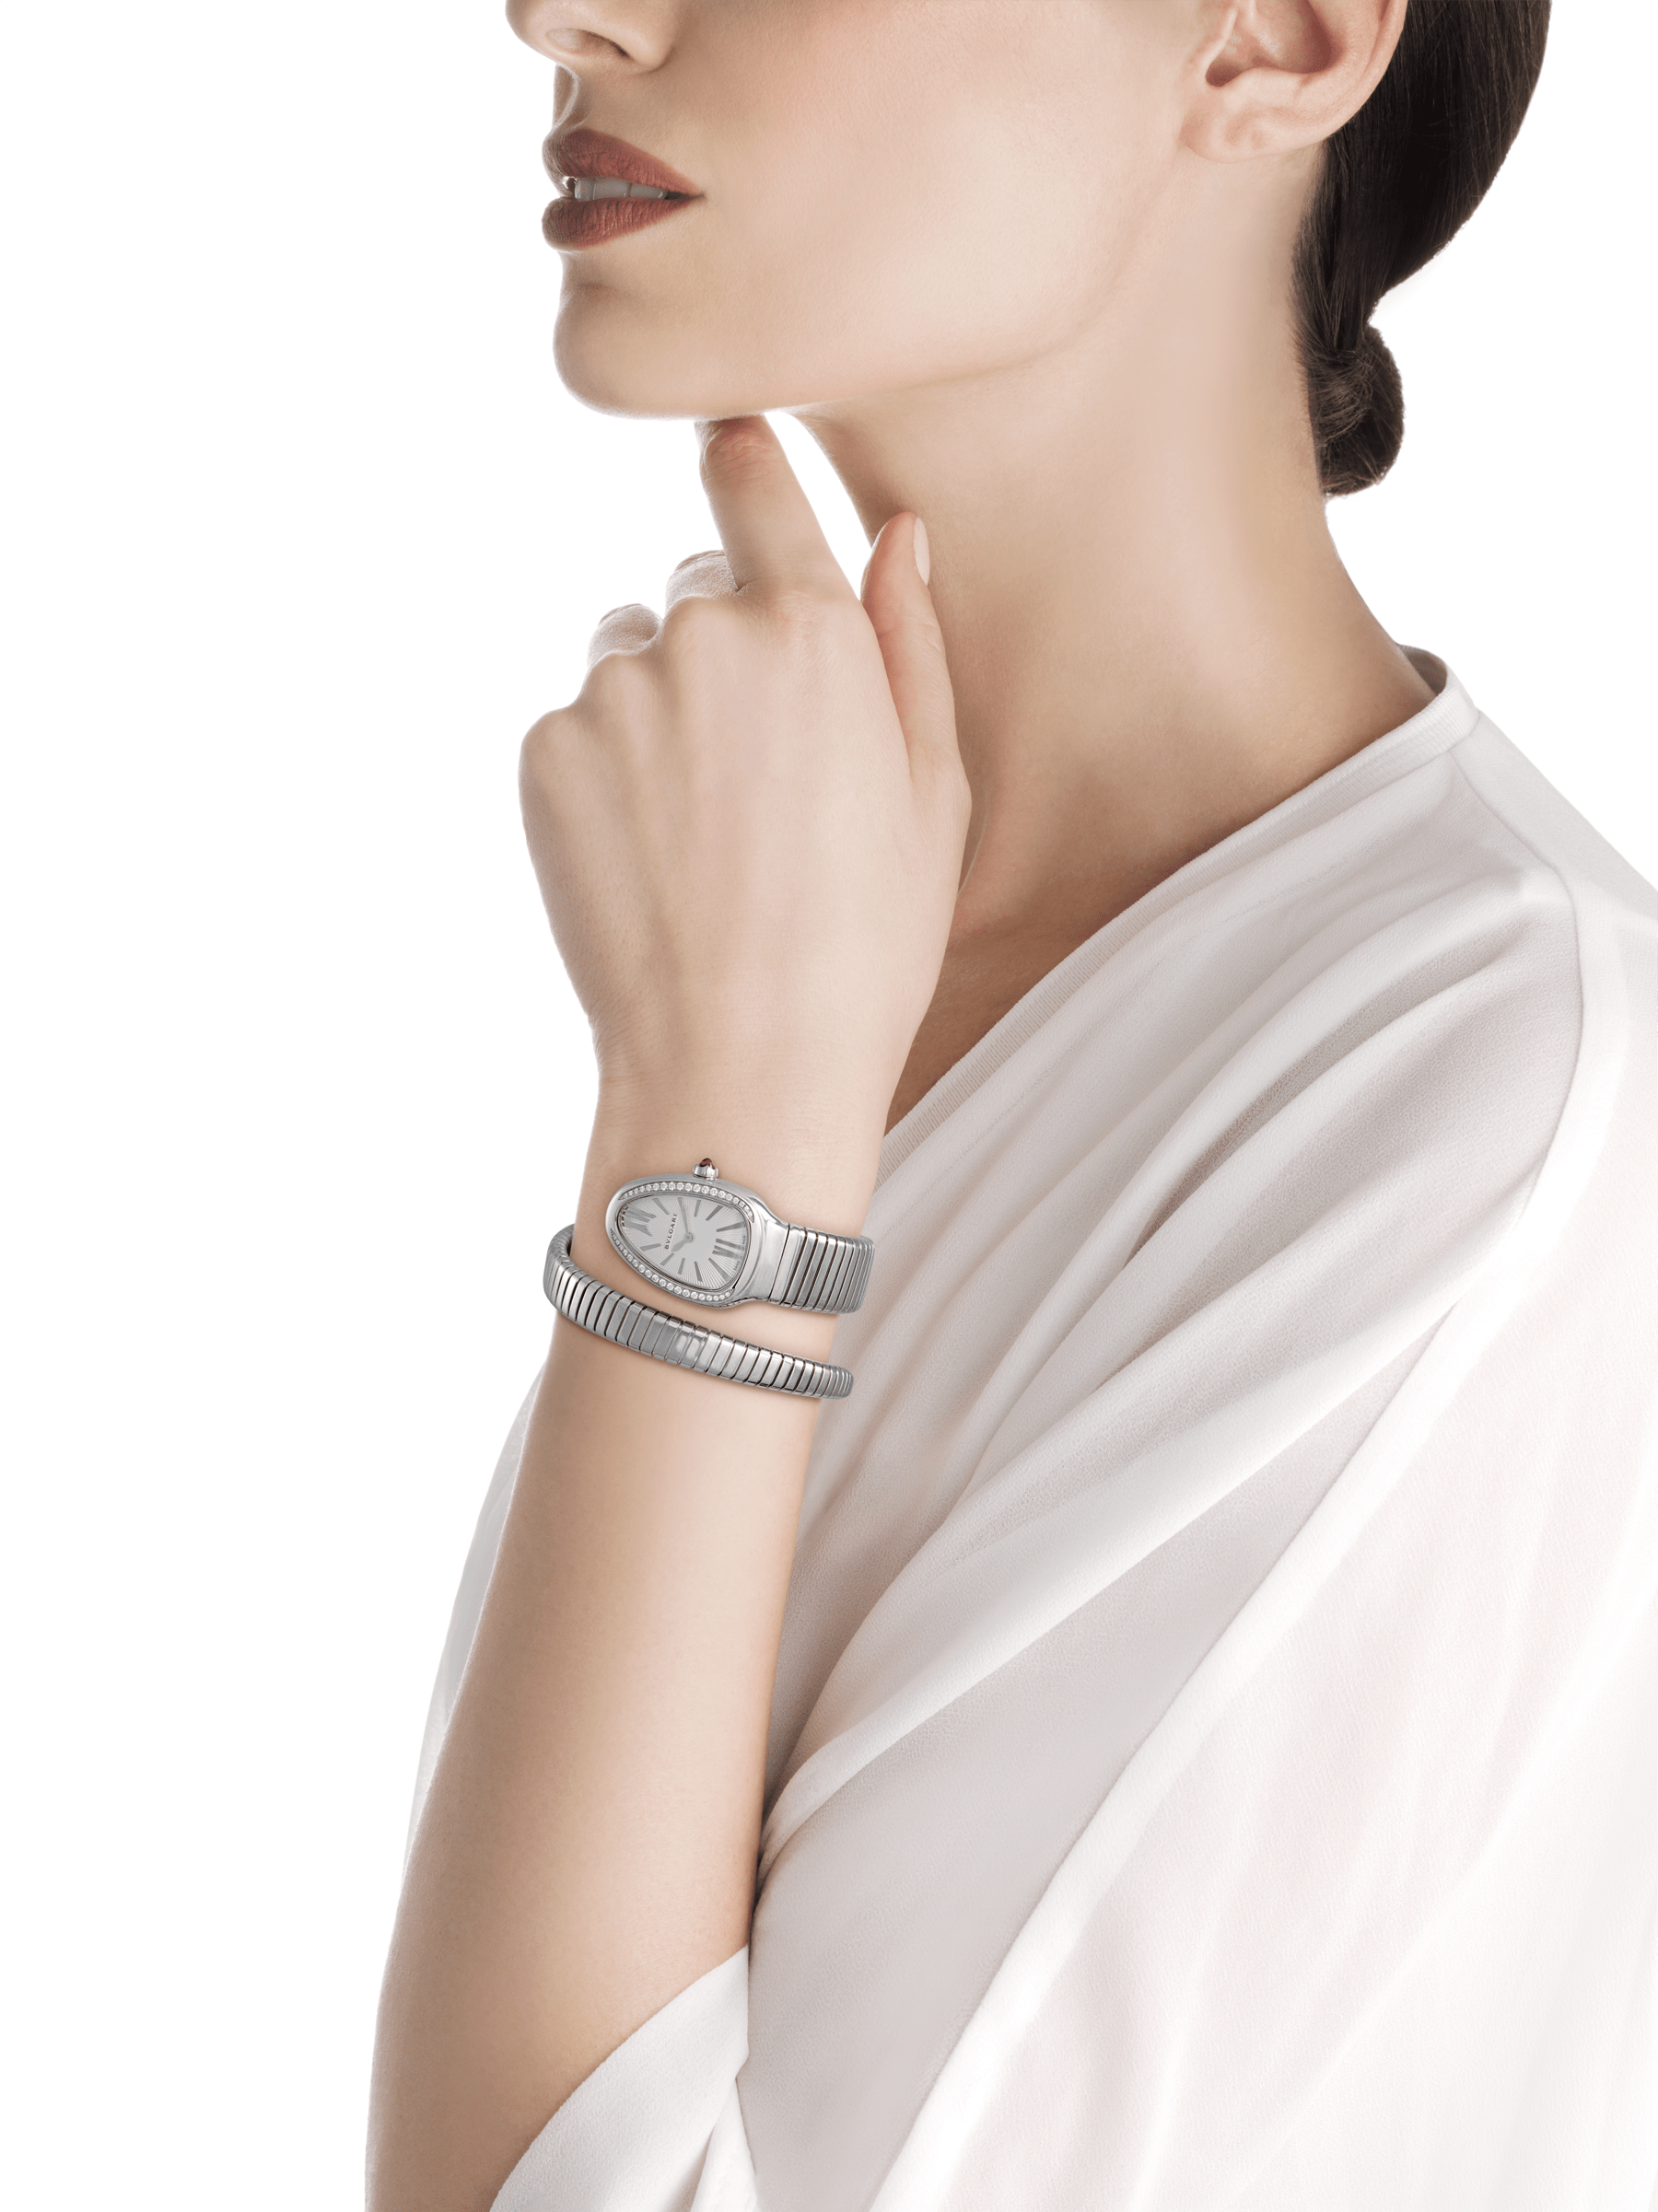 Serpenti Tubogas single spiral watch in stainless steel case and bracelet, bezel set with brilliant cut diamonds and silver opaline dial. Large Size. SrpntTubogas-white-dial2 image 4